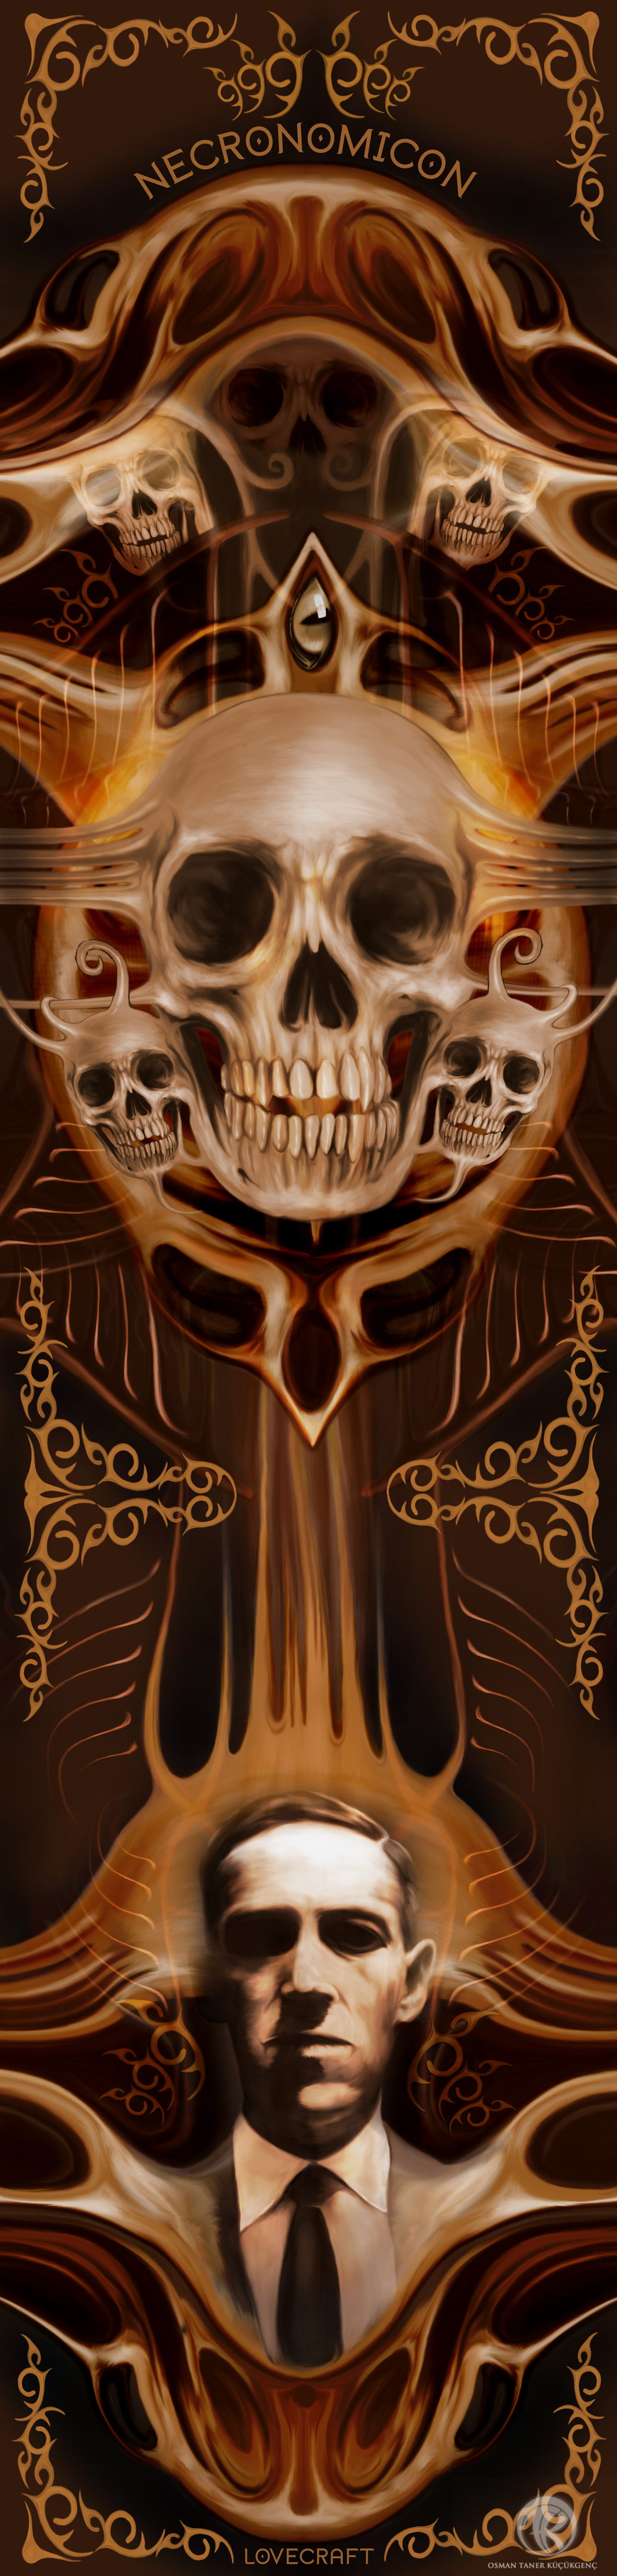 NECRONOMICON Digital Painting wacom intuos 5 - Photoshop CS5